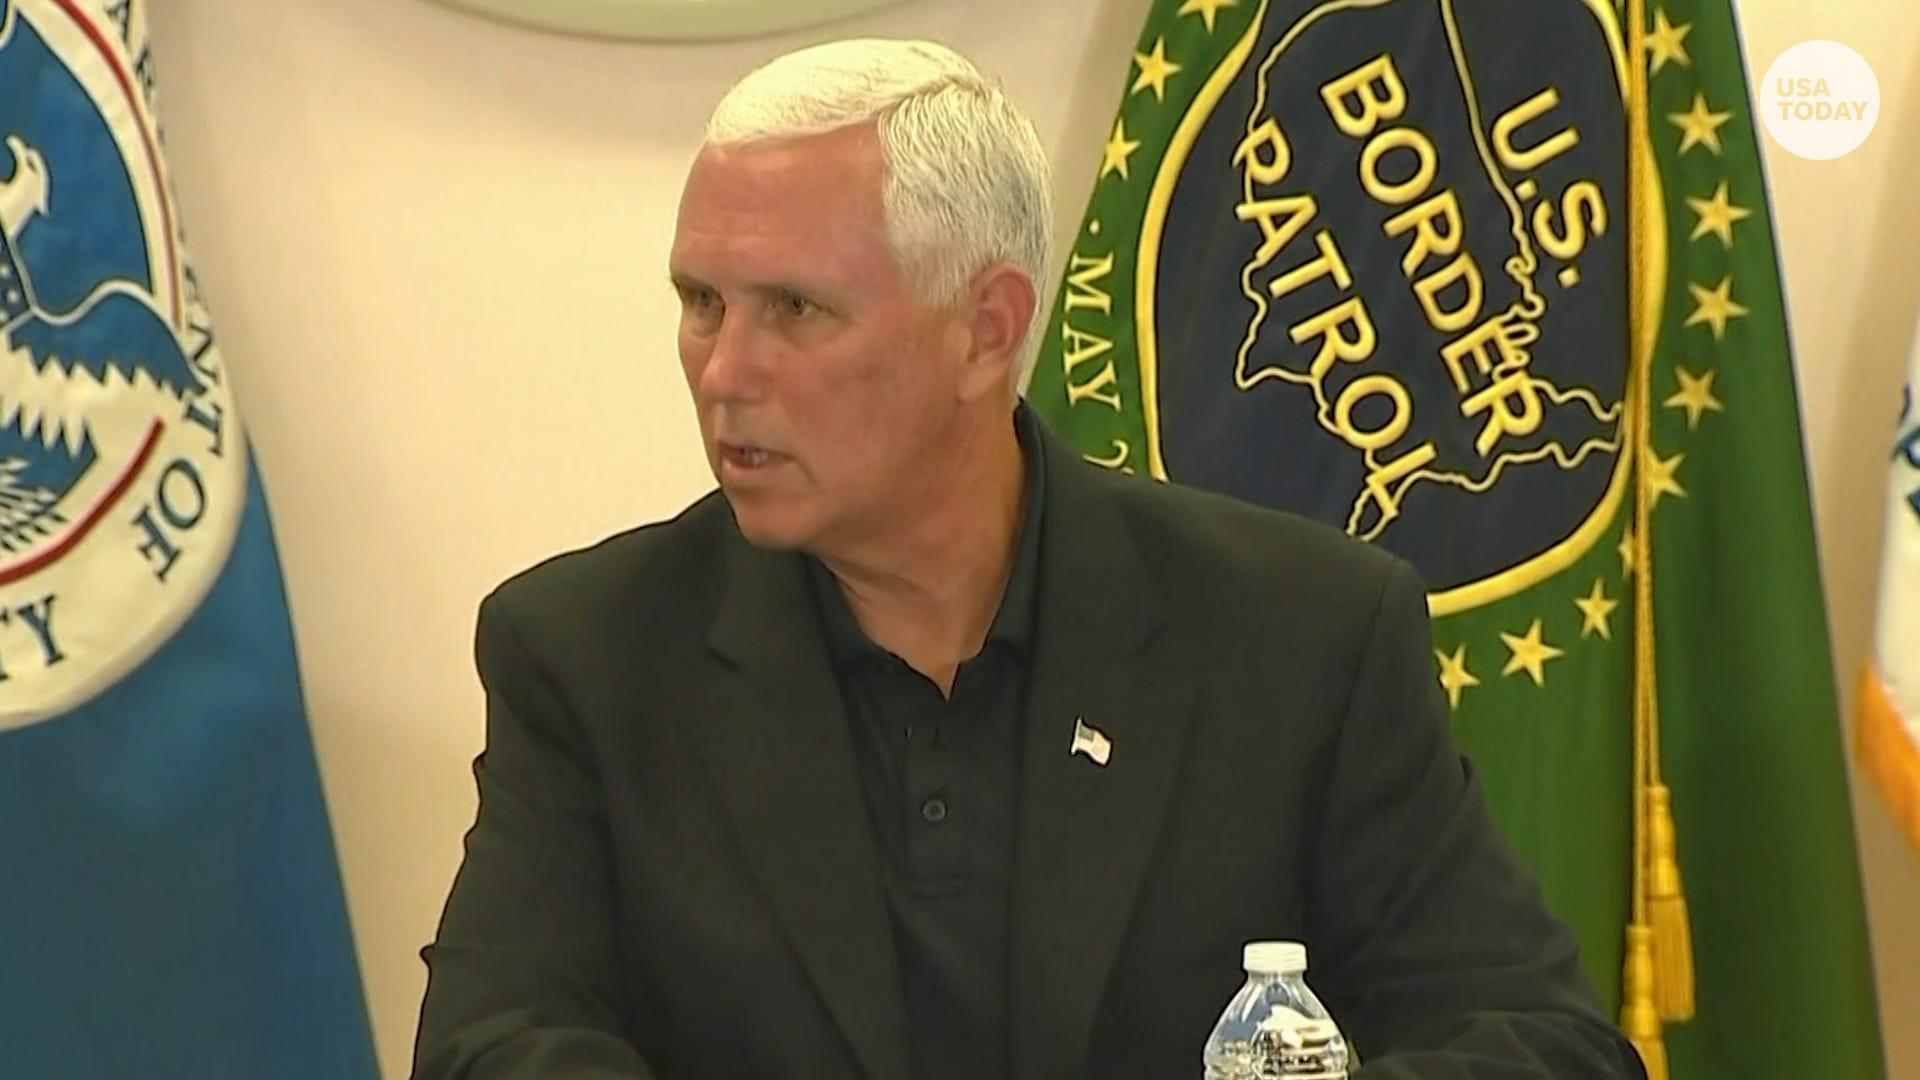 Mike Pence got a first-hand look at border detention facilities in McAllen and Donna, Texas. What he saw